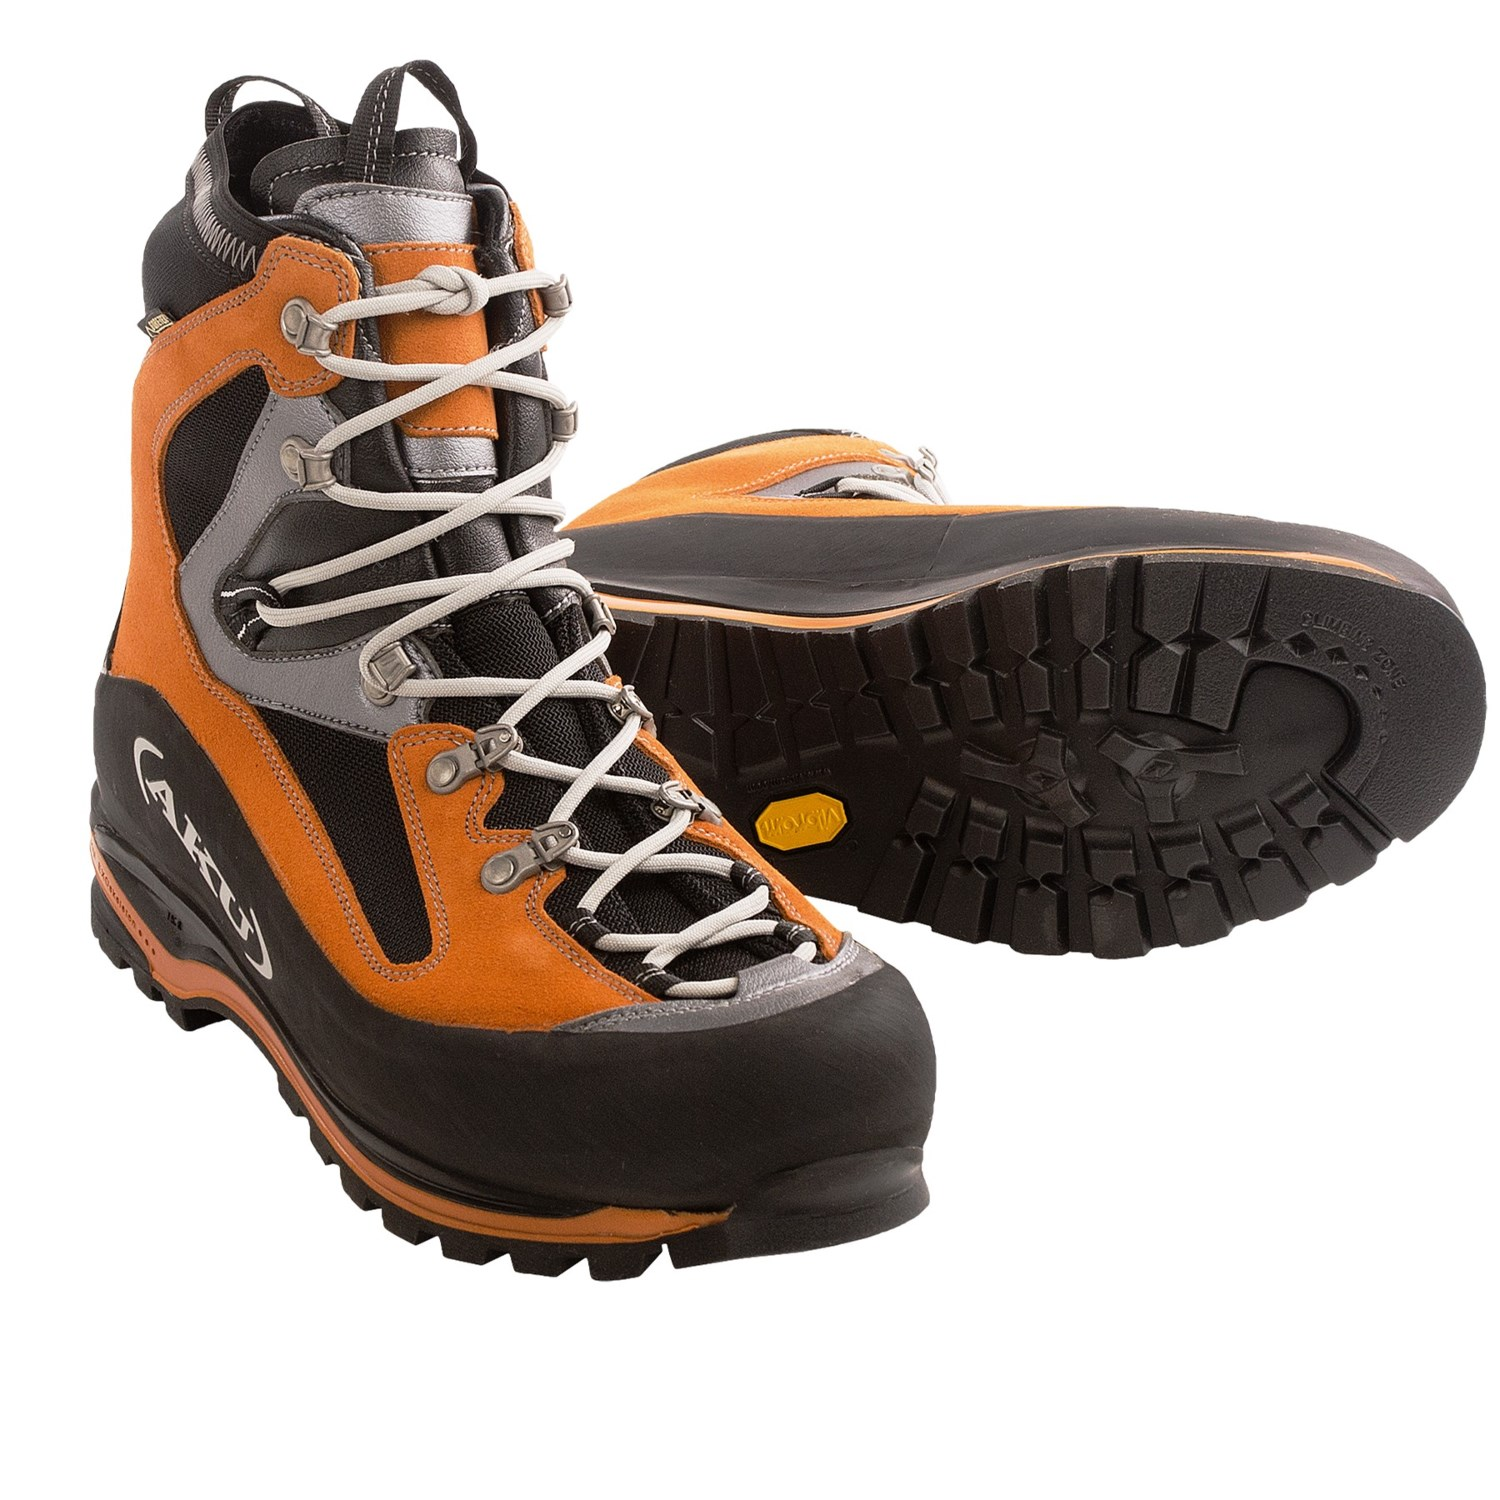 AKU Terrealte Gore-Tex® Mountaineering Boots (For Men) 7364W ...